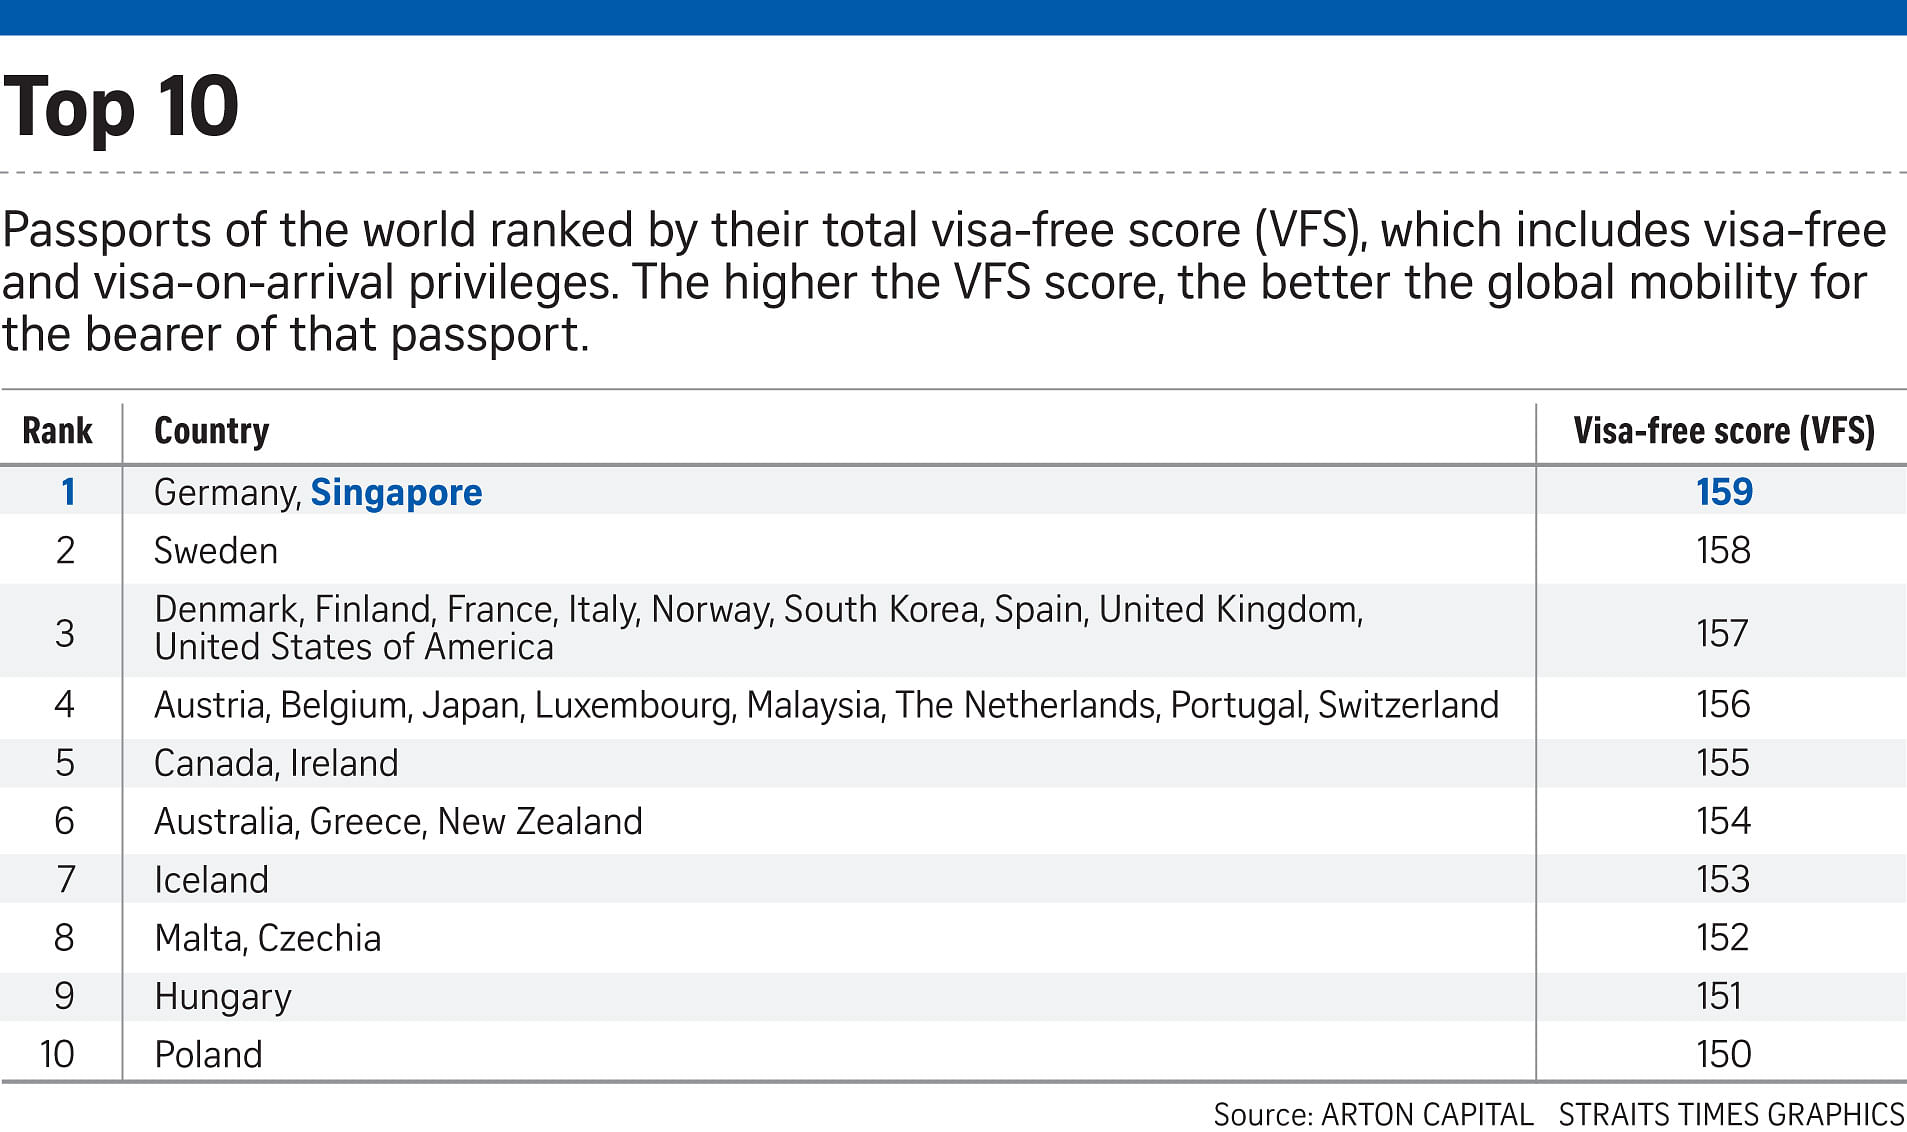 Singaporeans, Germans hold 'world's most powerful passports